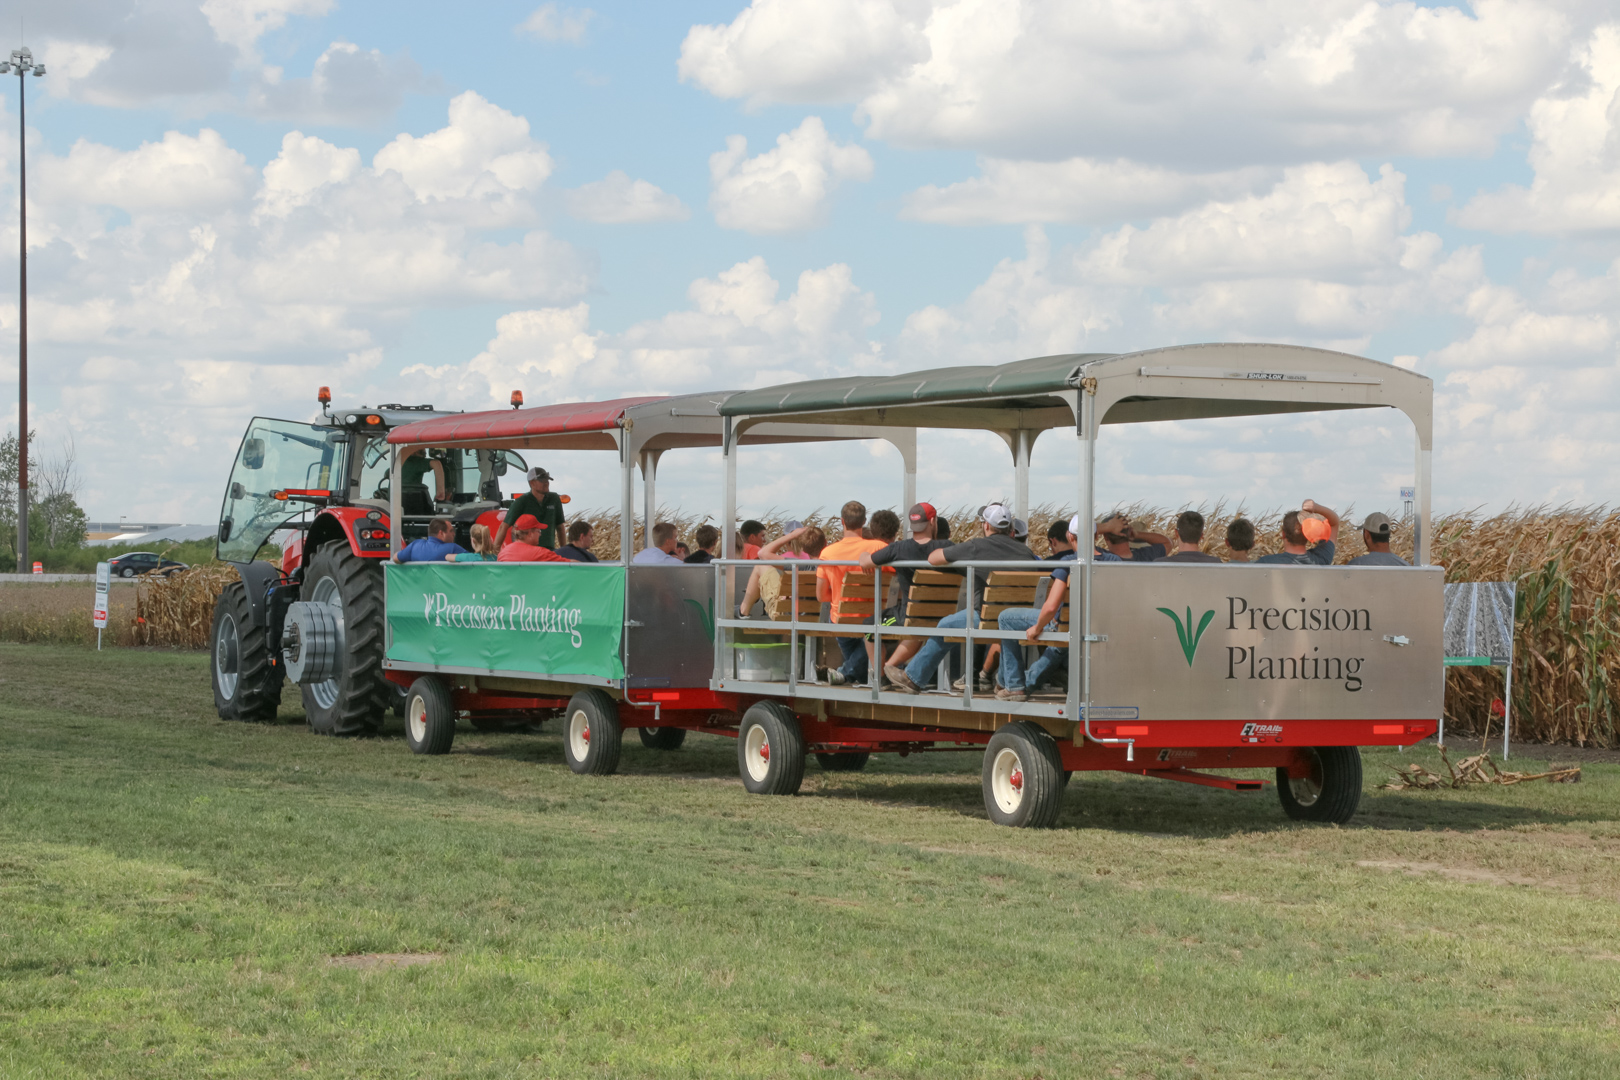 Farmers on the agronomy tour via tractor cart at the PTI Farm